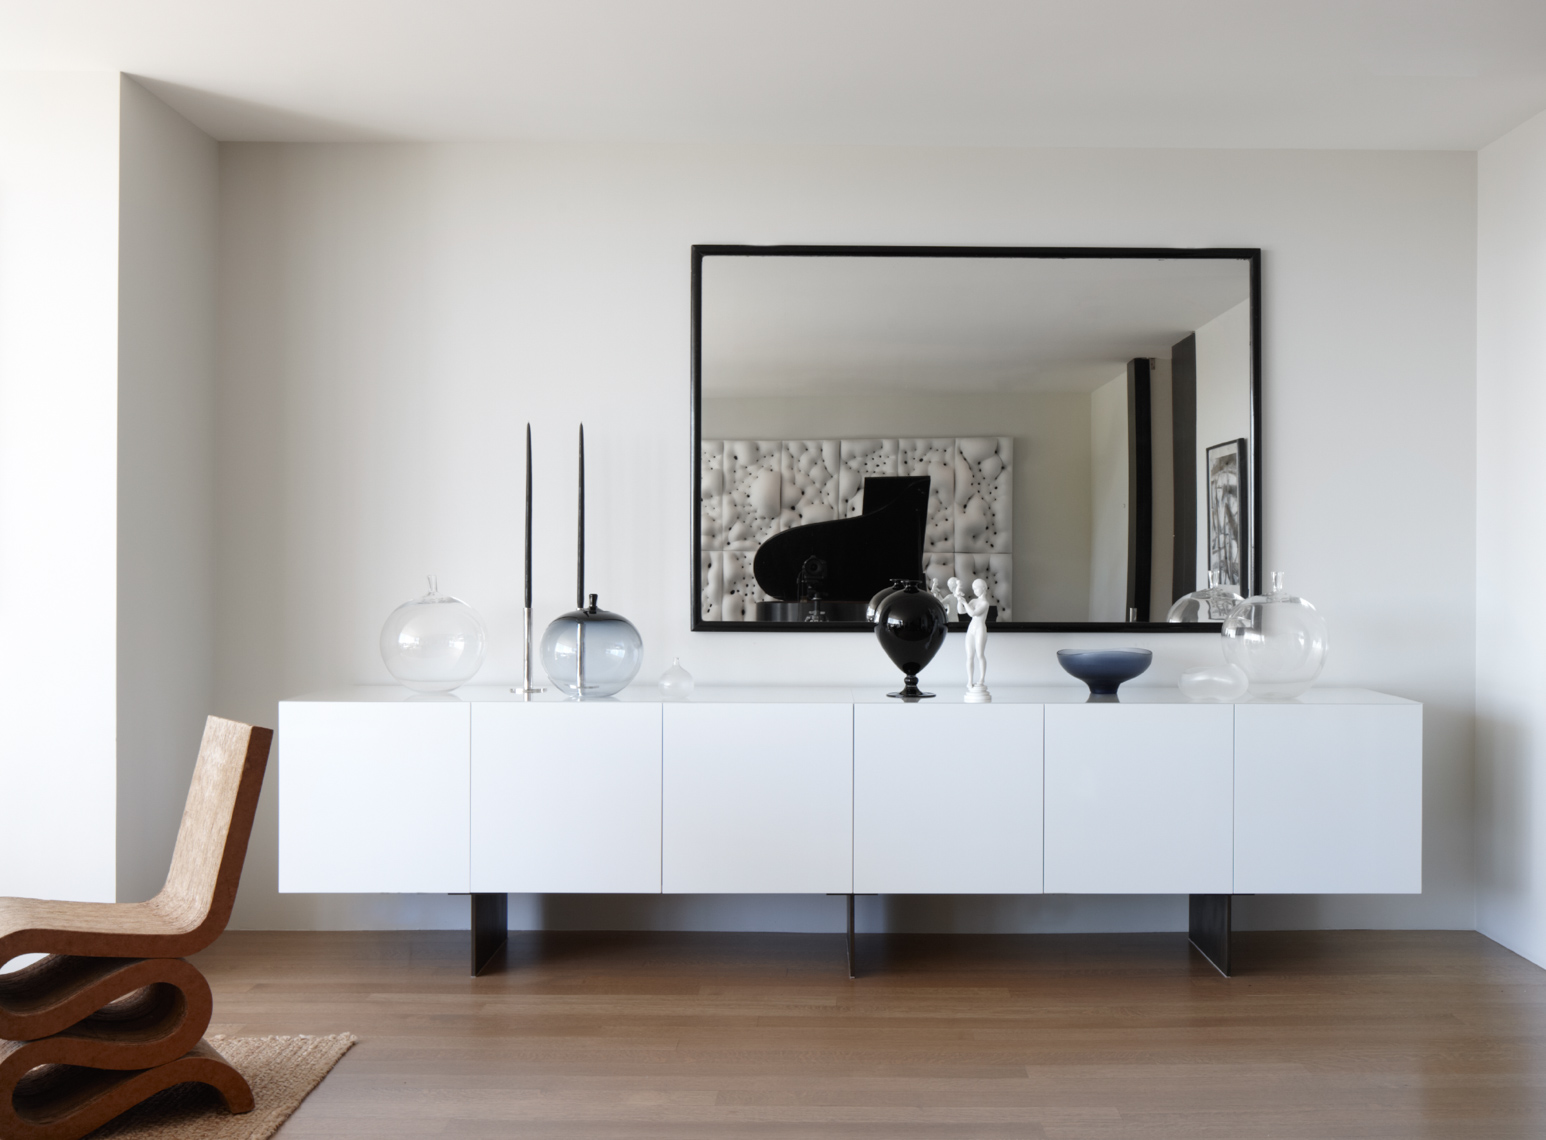 modern living room interior with white sideboard and glassware below a mirror